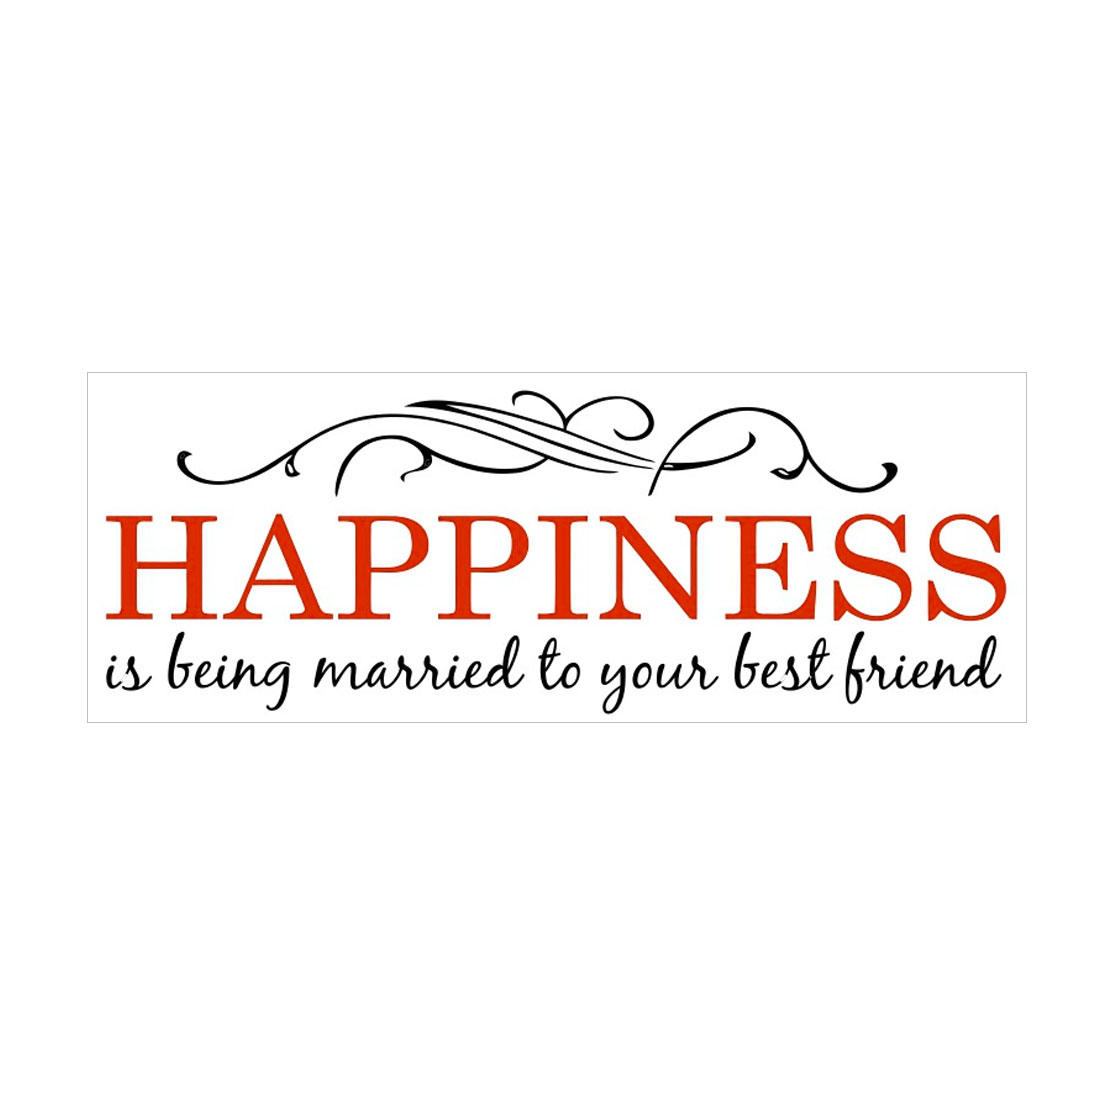 Happiness Quote Wall Sticker Removable PVC Art Decals Home Office Decor